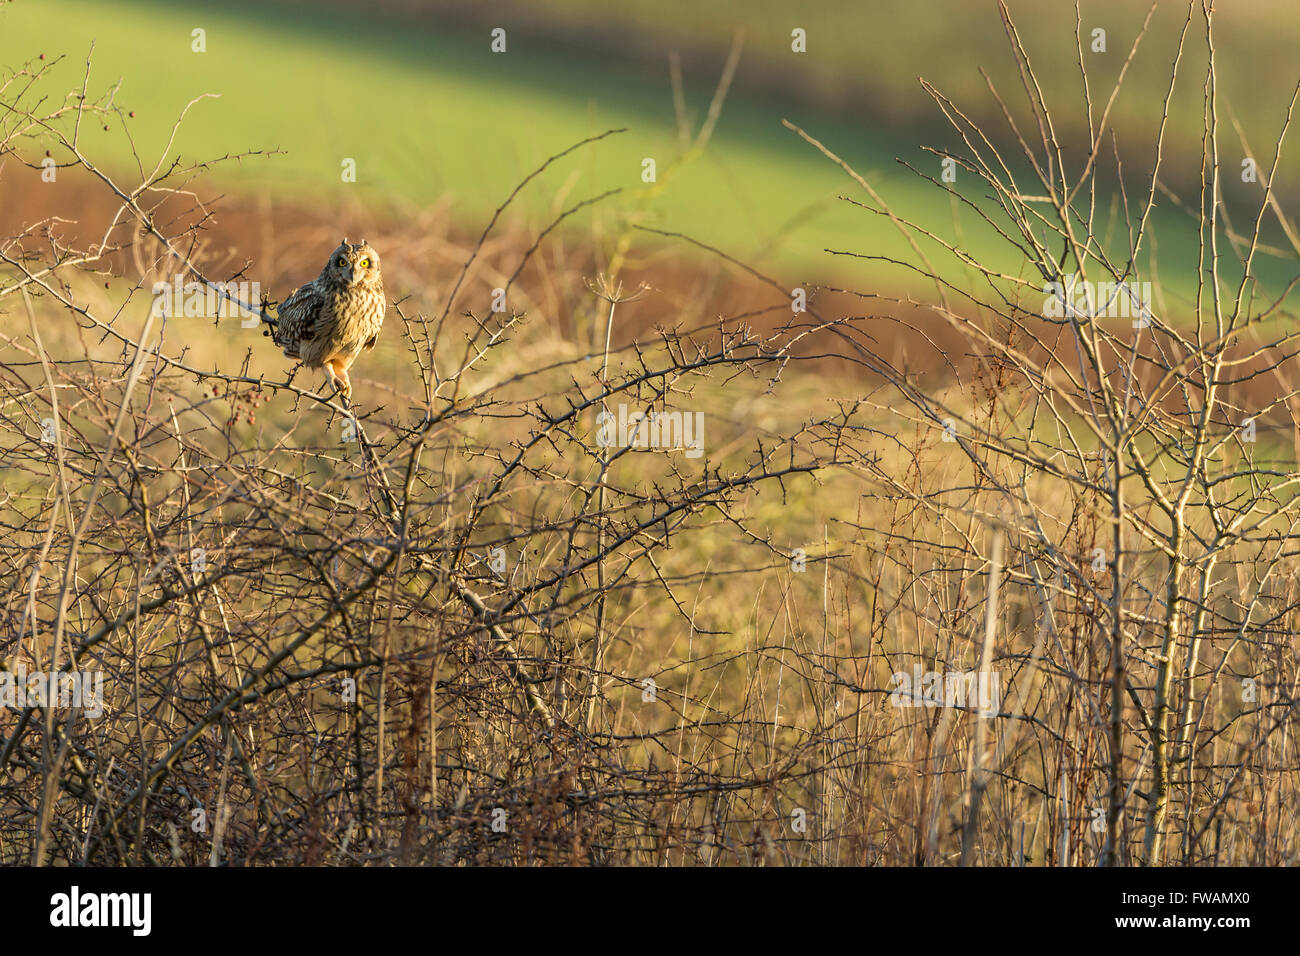 Short-eared owl Asio flammeus, perched in hedgerow on farmland, Berwick Bassett, Wiltshire, UK in December. - Stock Image